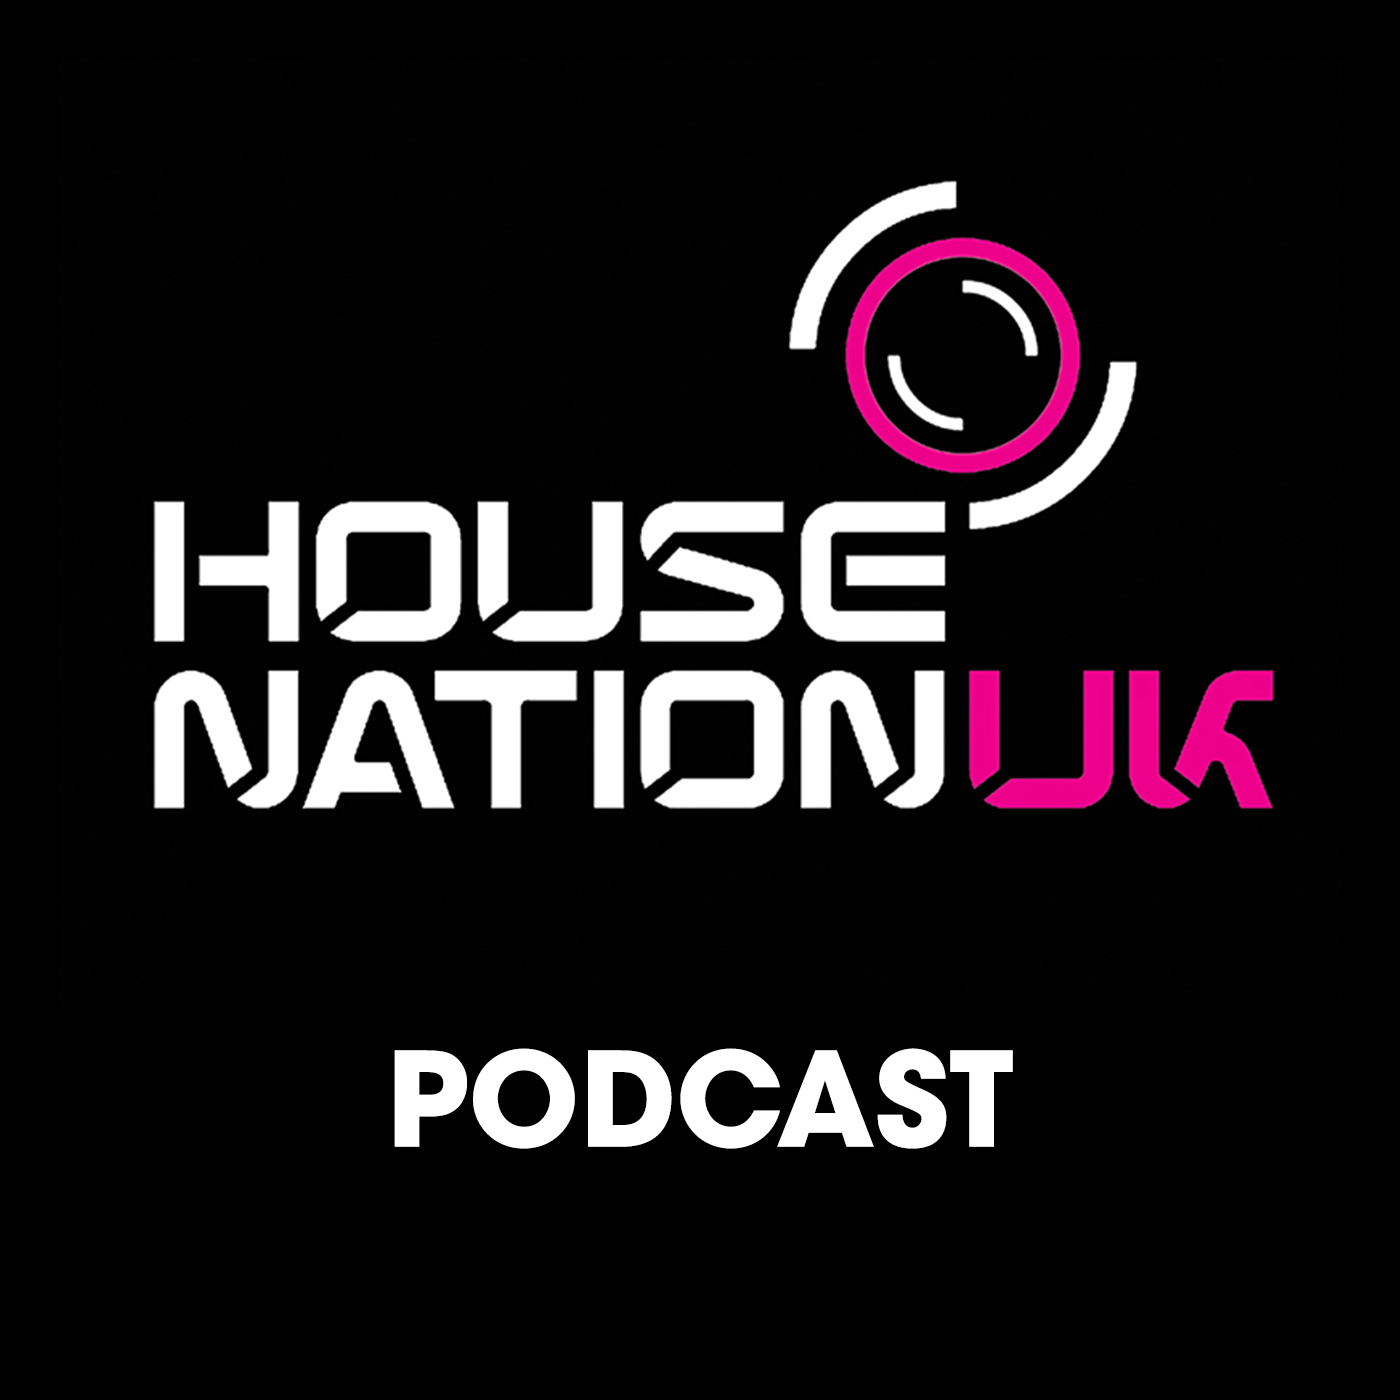 House Nation UK Podcast | House Music 24/7 - HouseNationUK